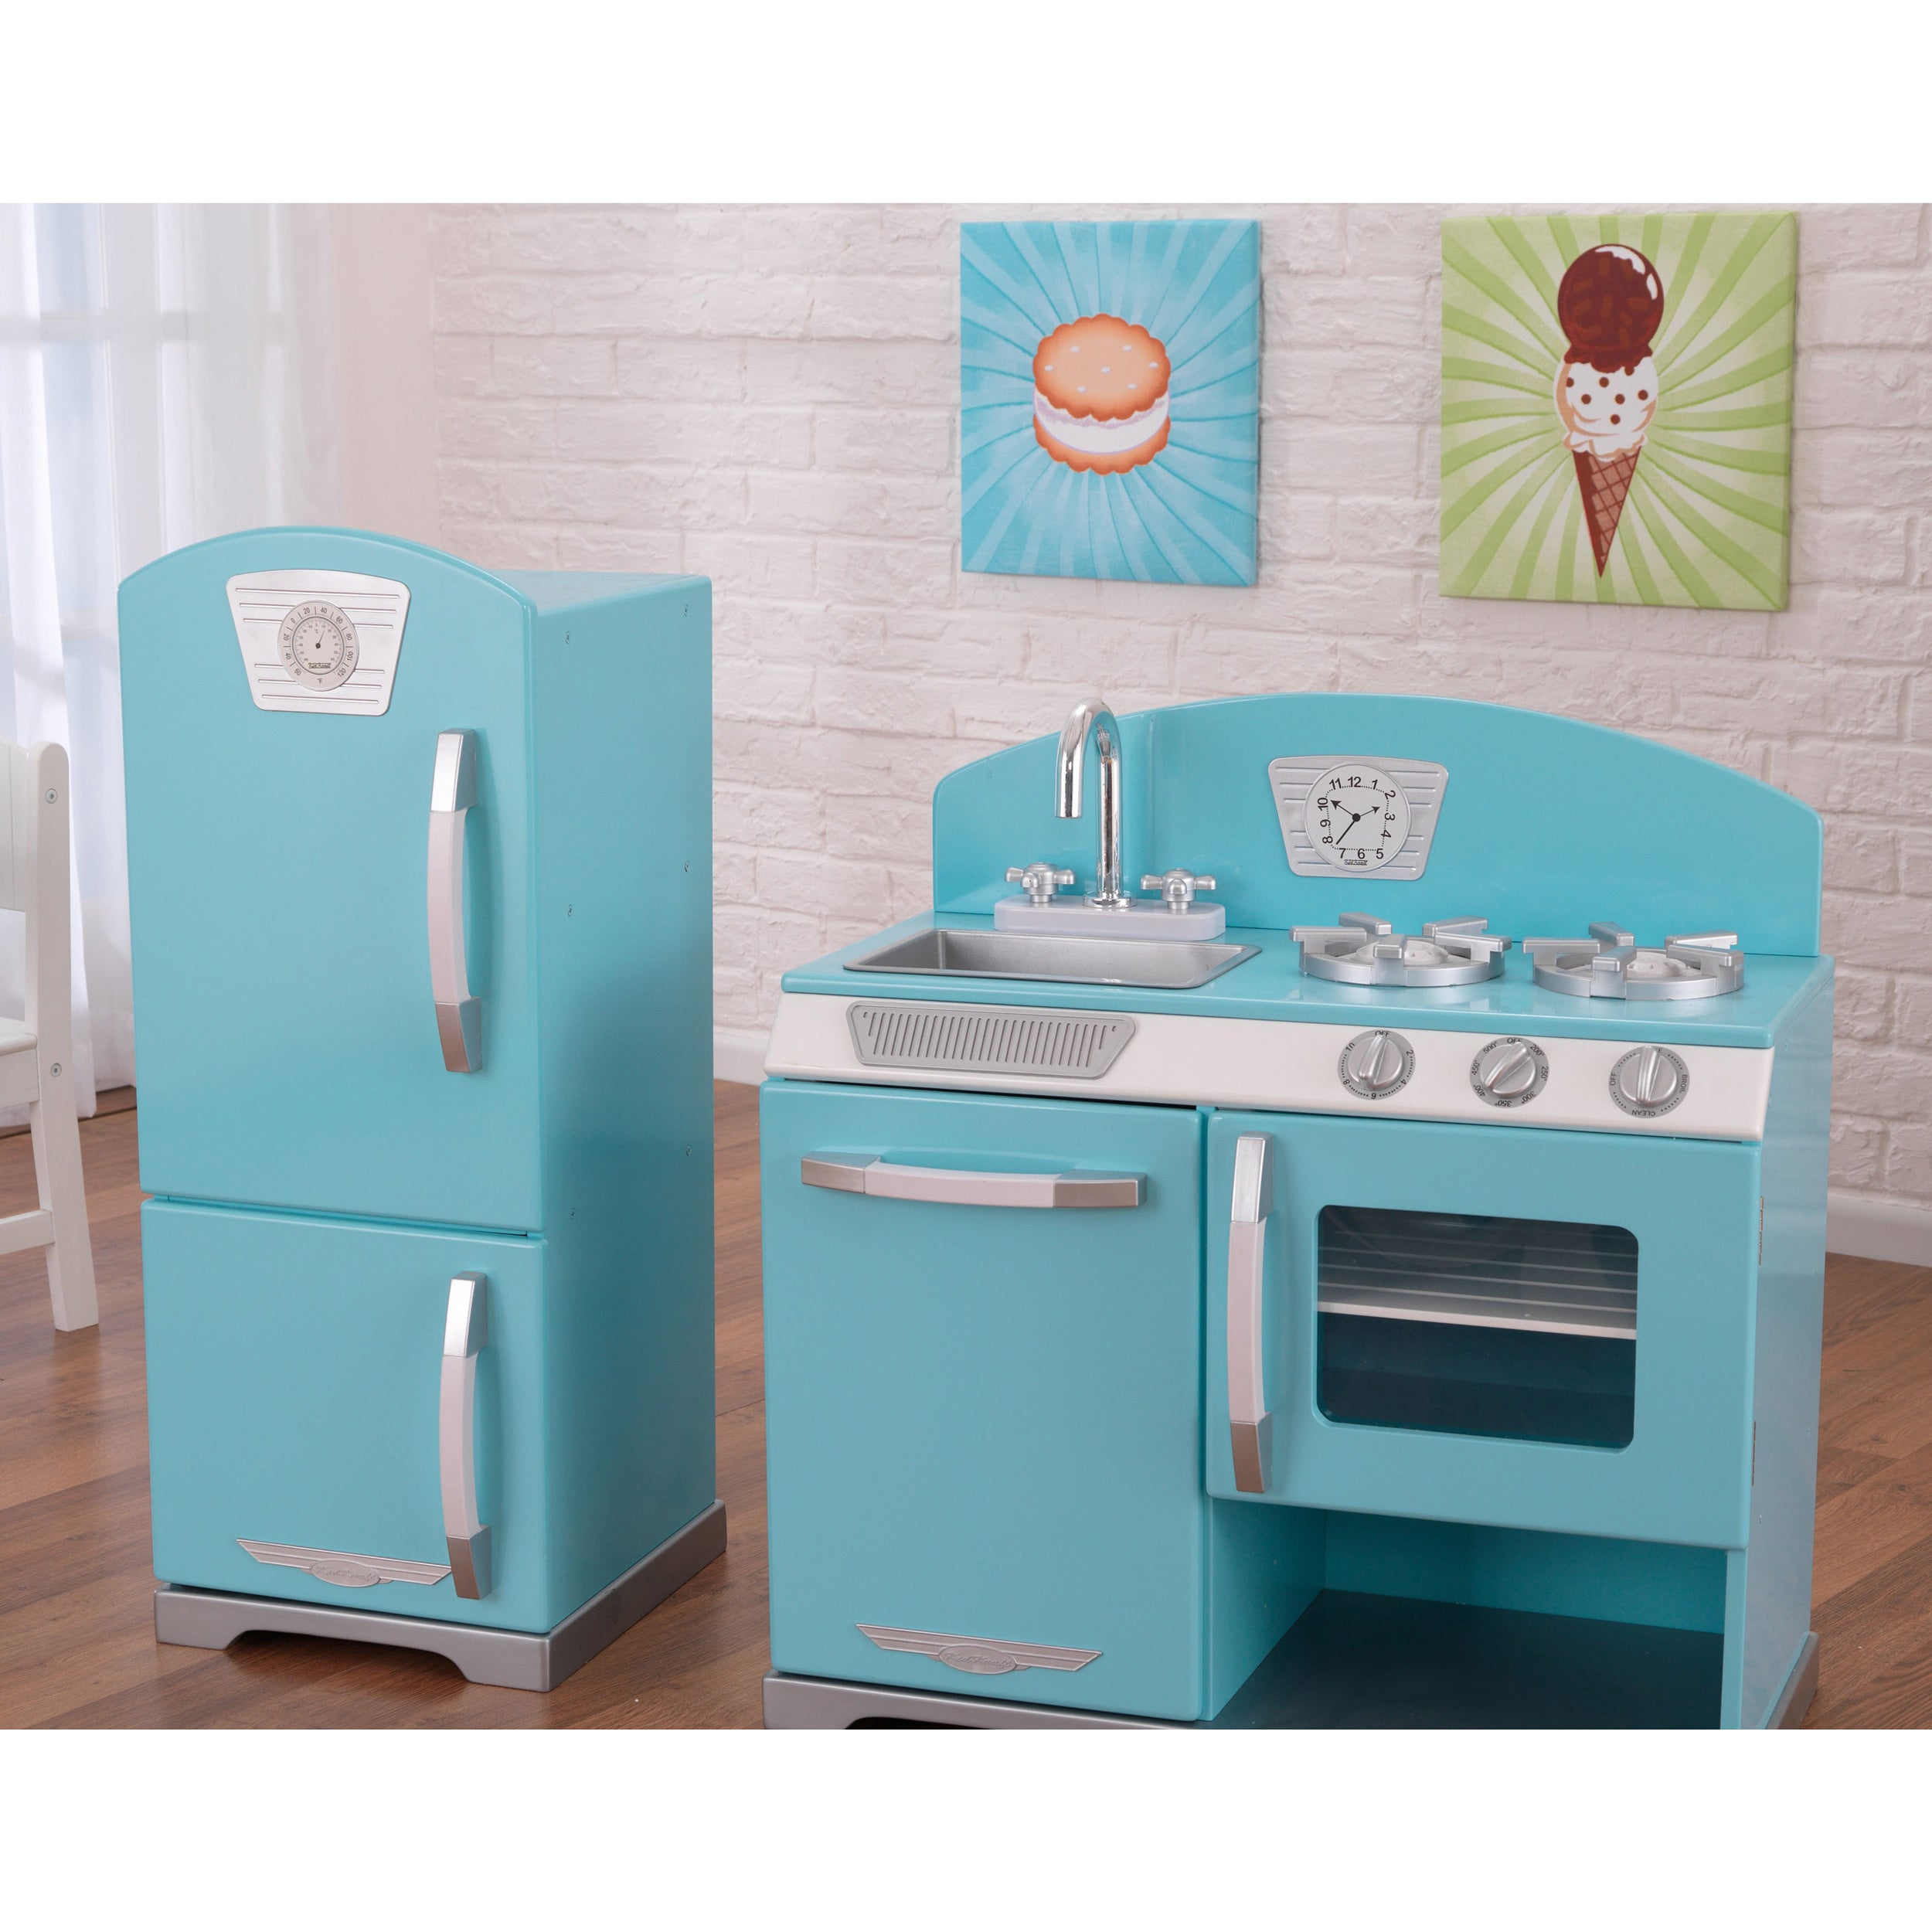 Shop KidKraft Retro Kitchen and Refrigerator - Free Shipping Today ...